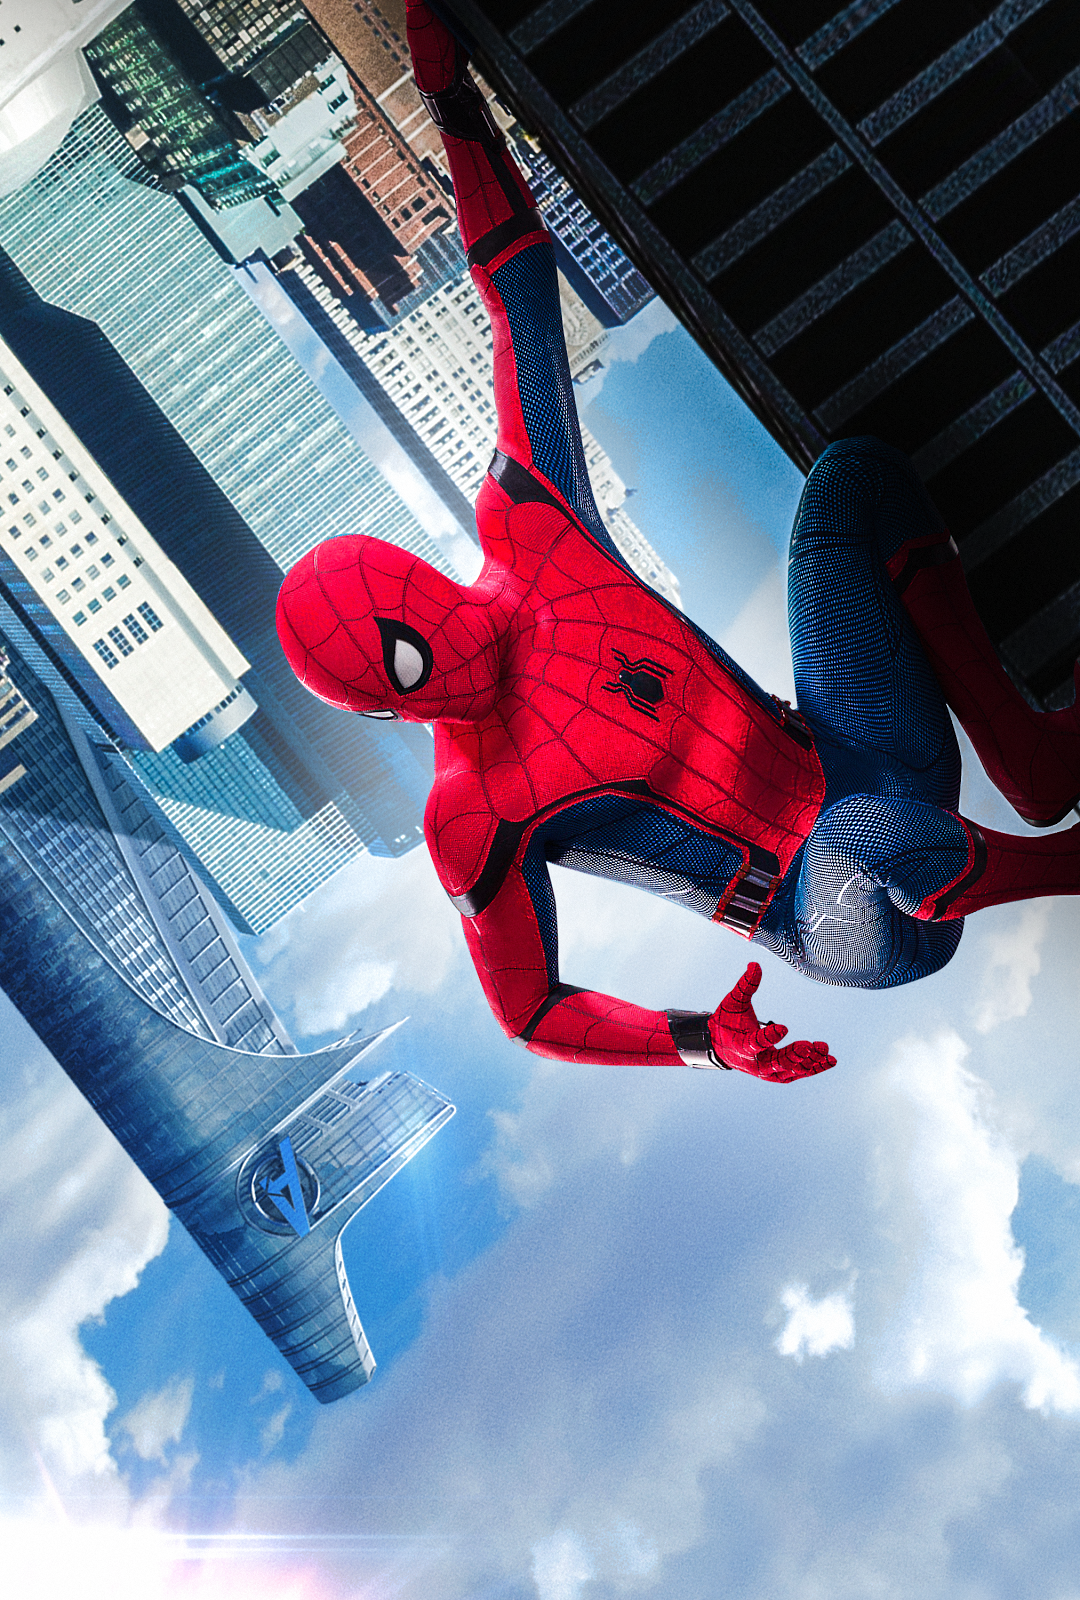 Textless_Spider-Man_Homecoming_Teaser_Poster_2.png